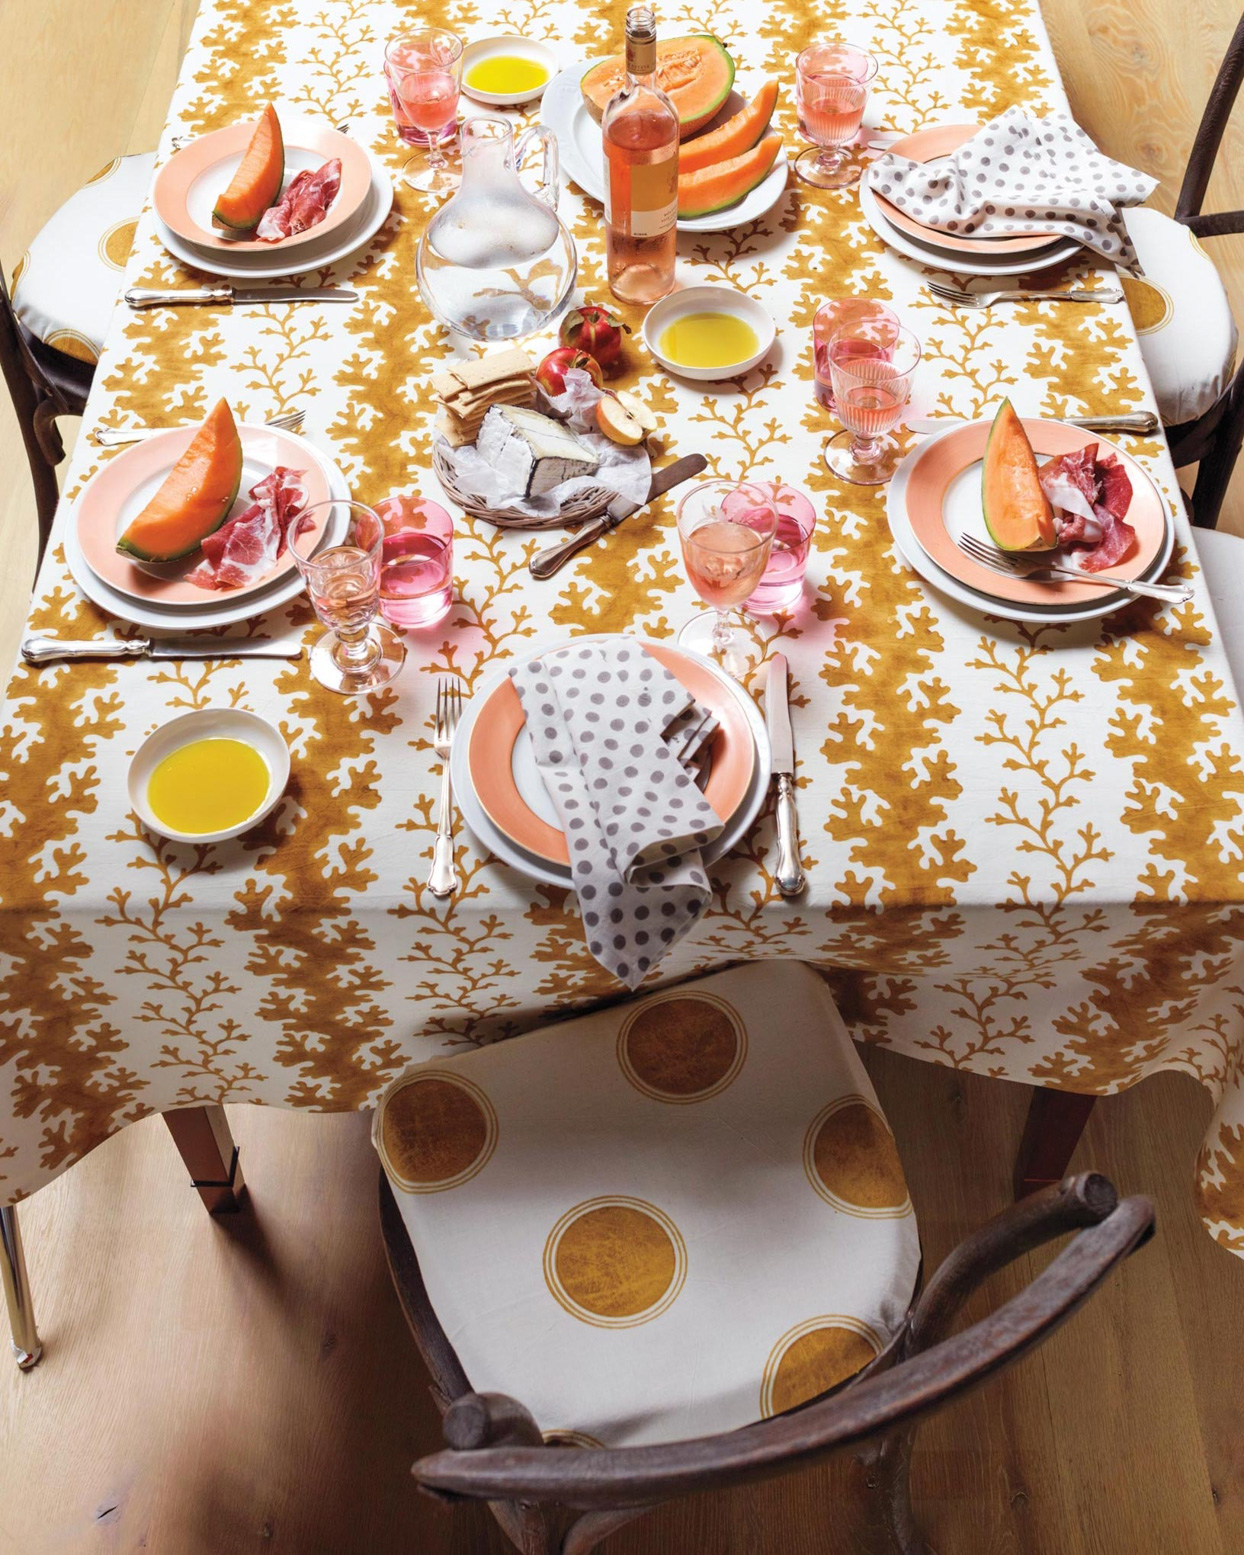 gold and white patterned table cloth and chairs